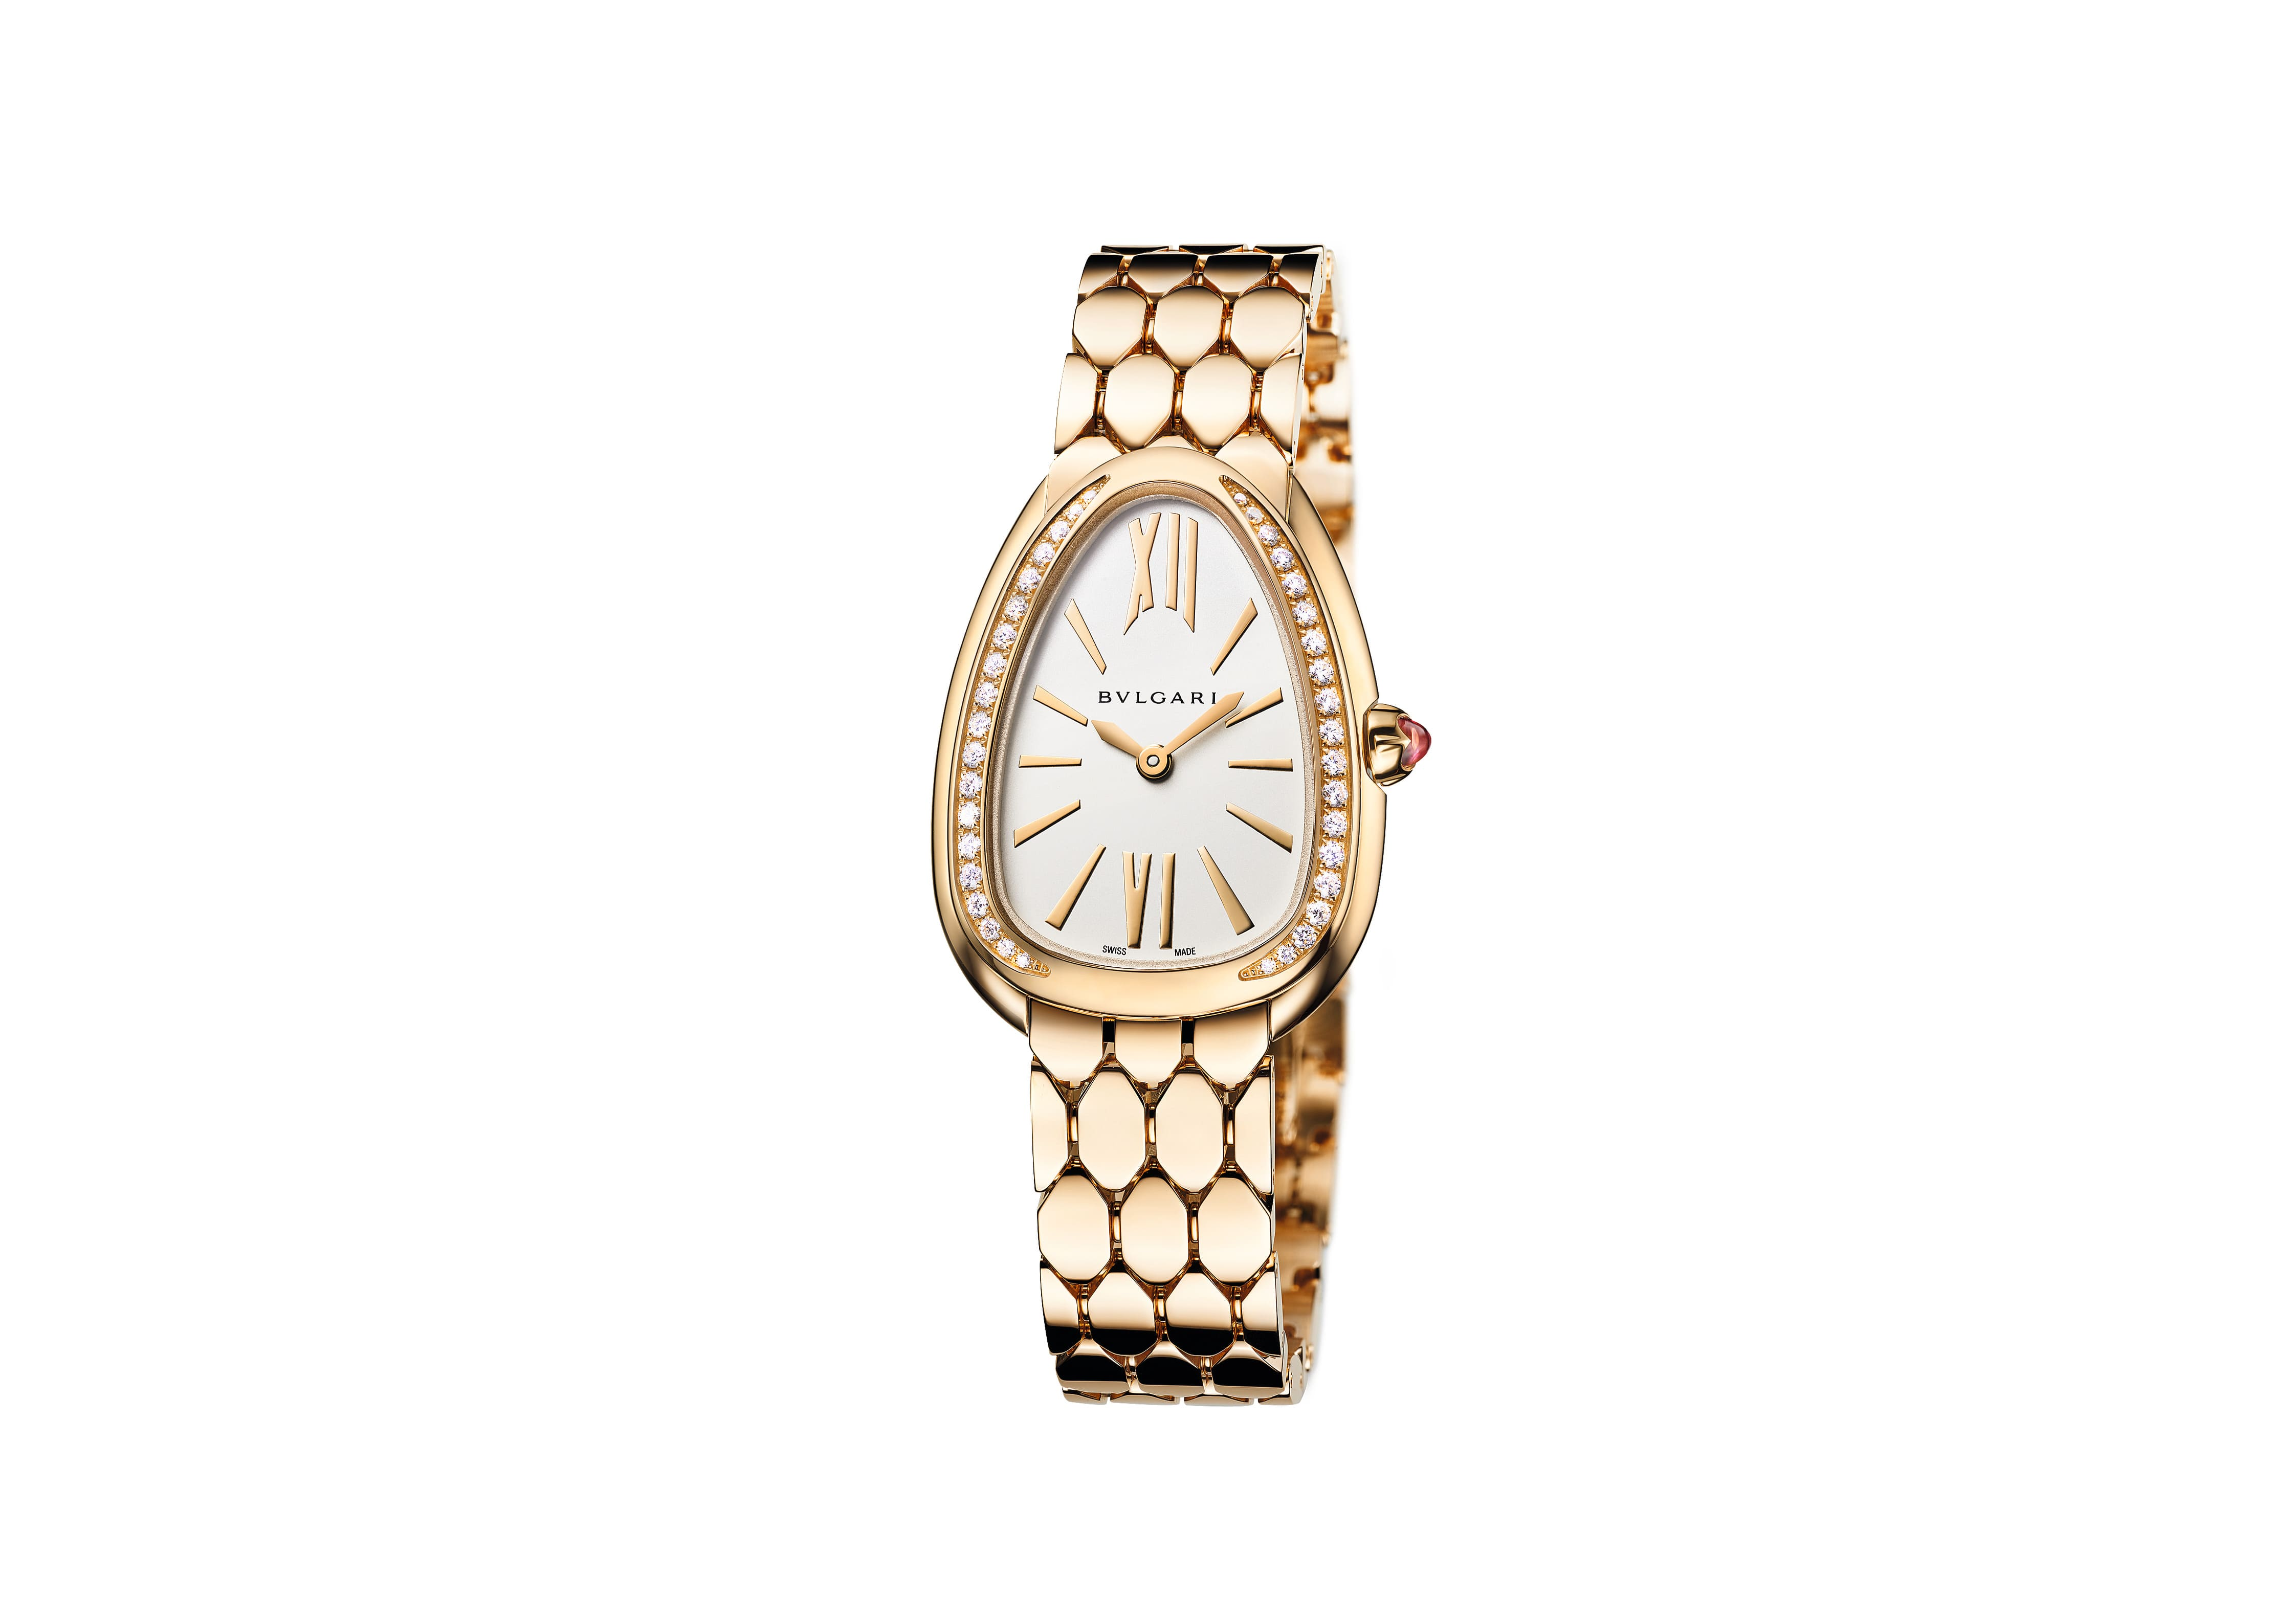 BVLGARI Serpenti Seduttori Watch